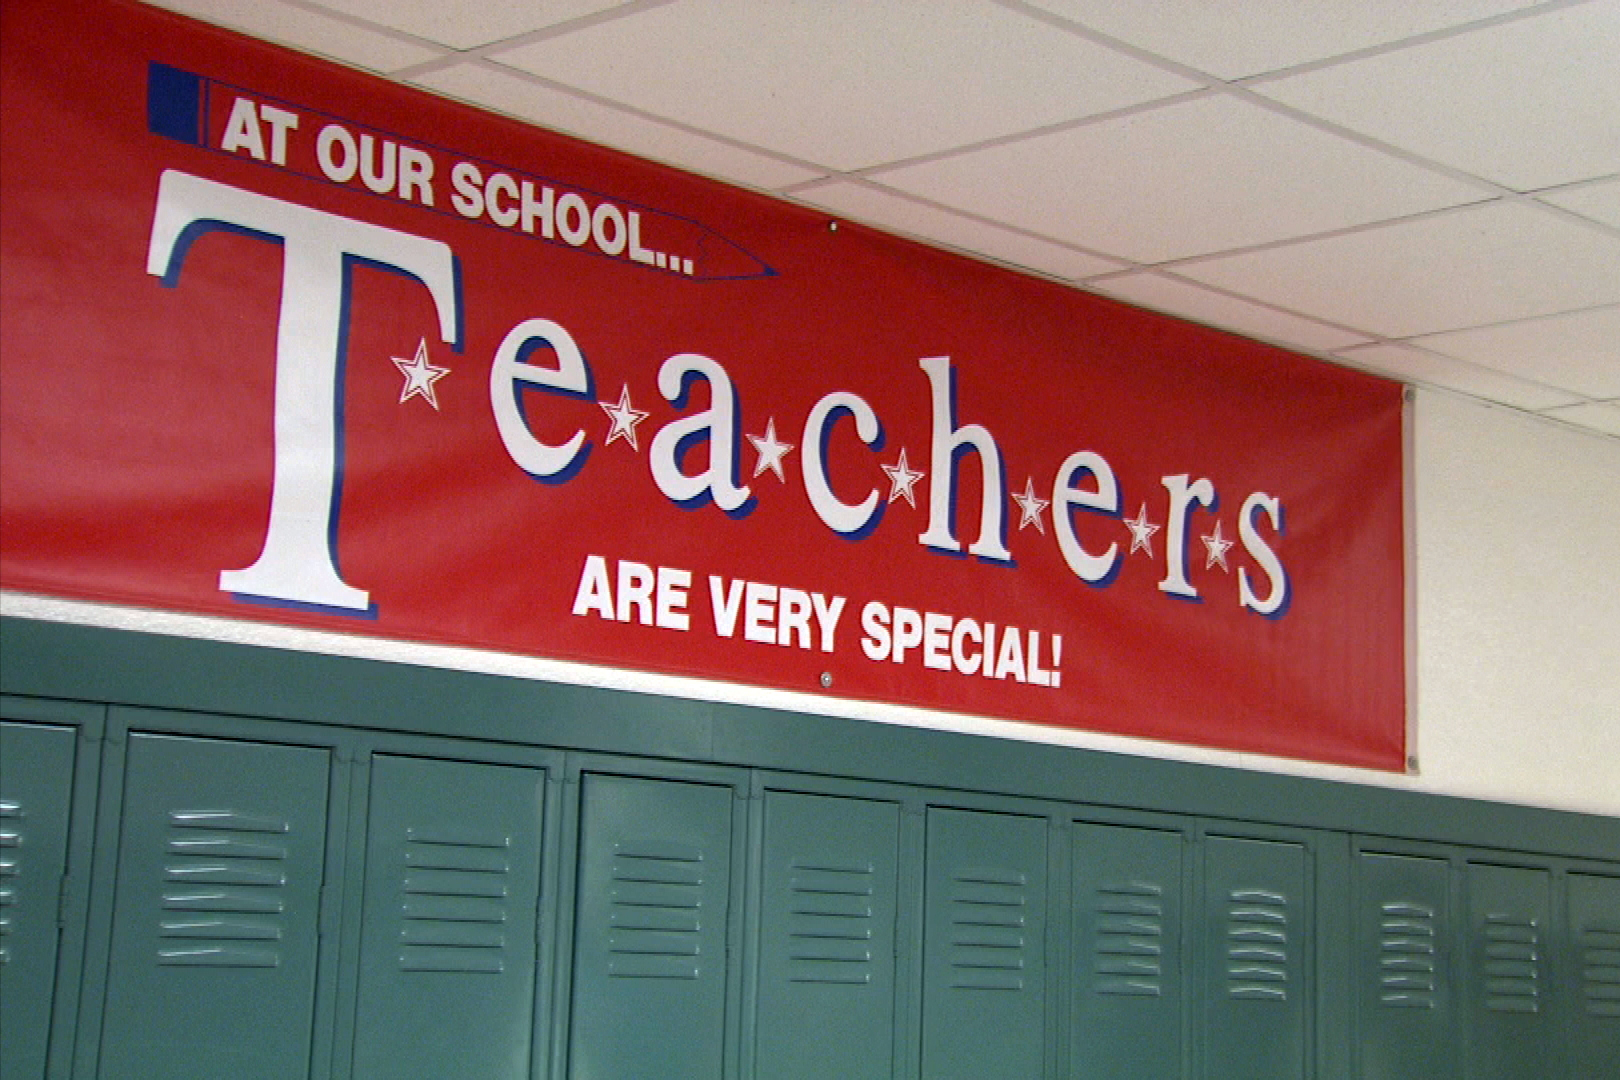 teachers-are-very-special-banner-above-lockers-1.jpg